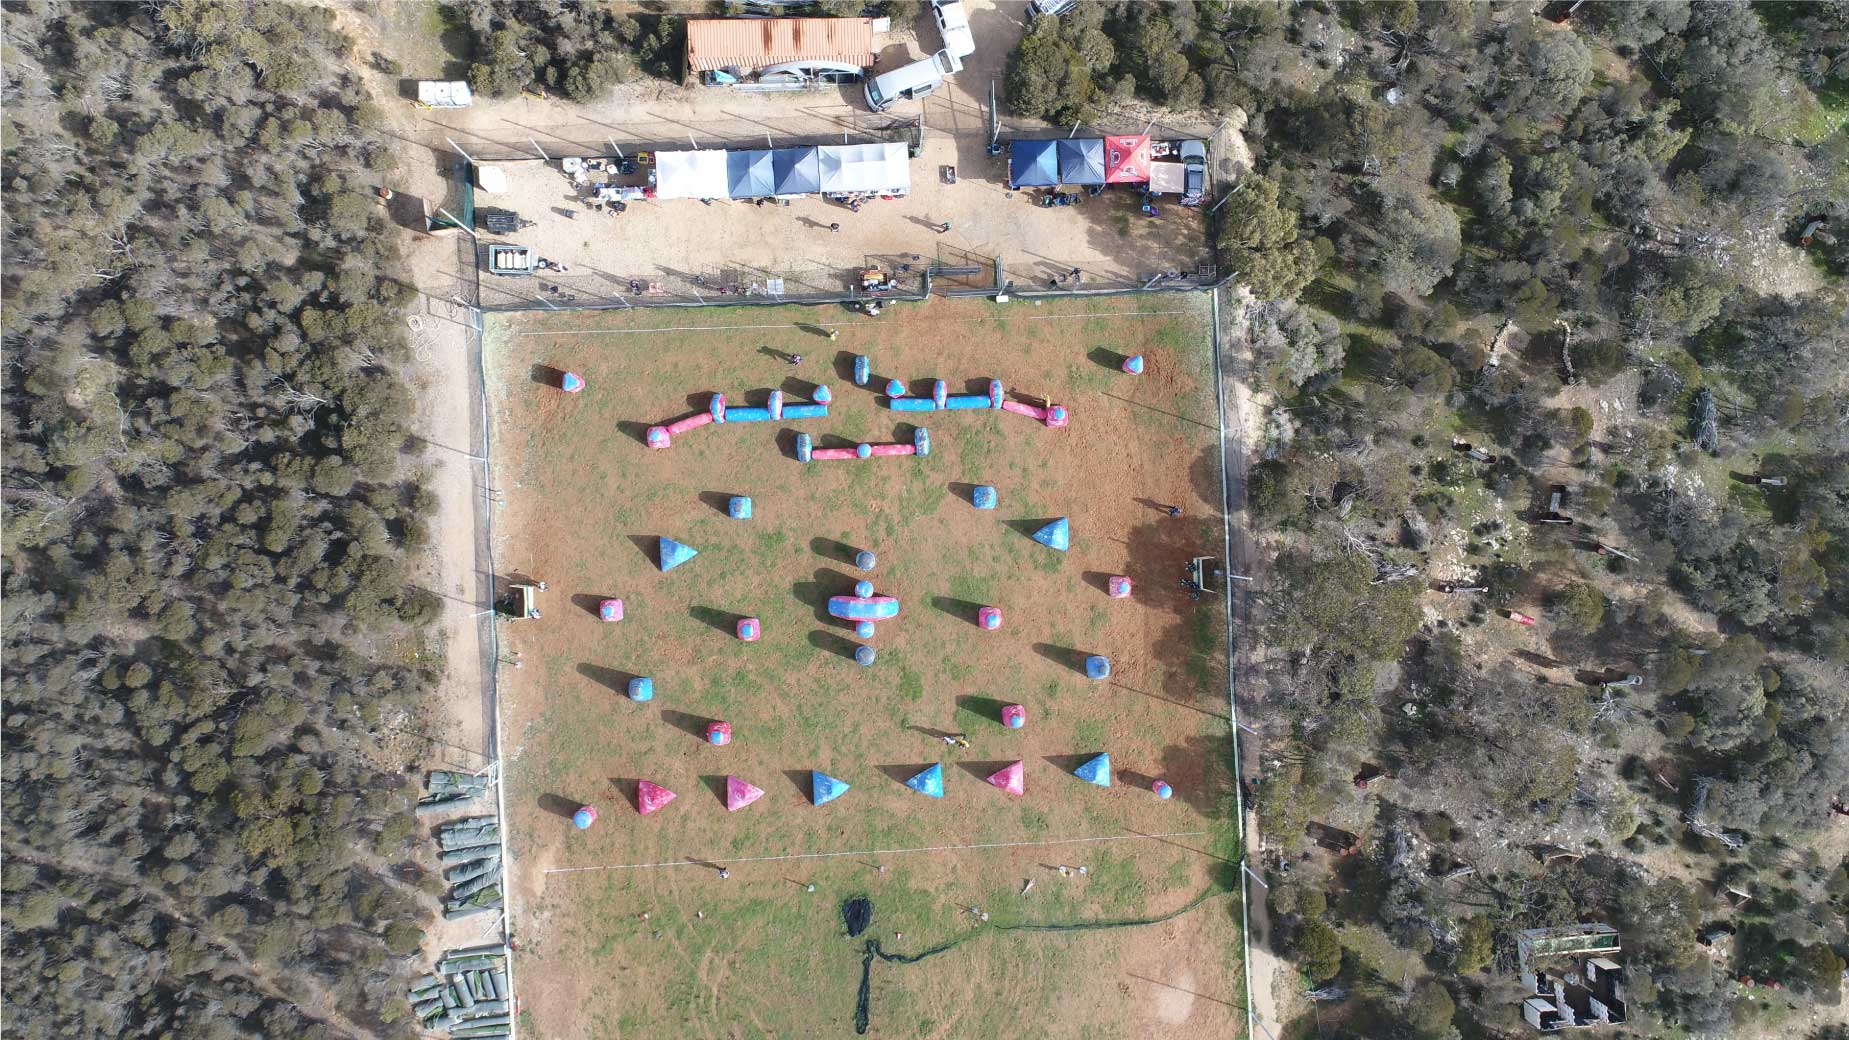 Group tournament paintball Hartley overview